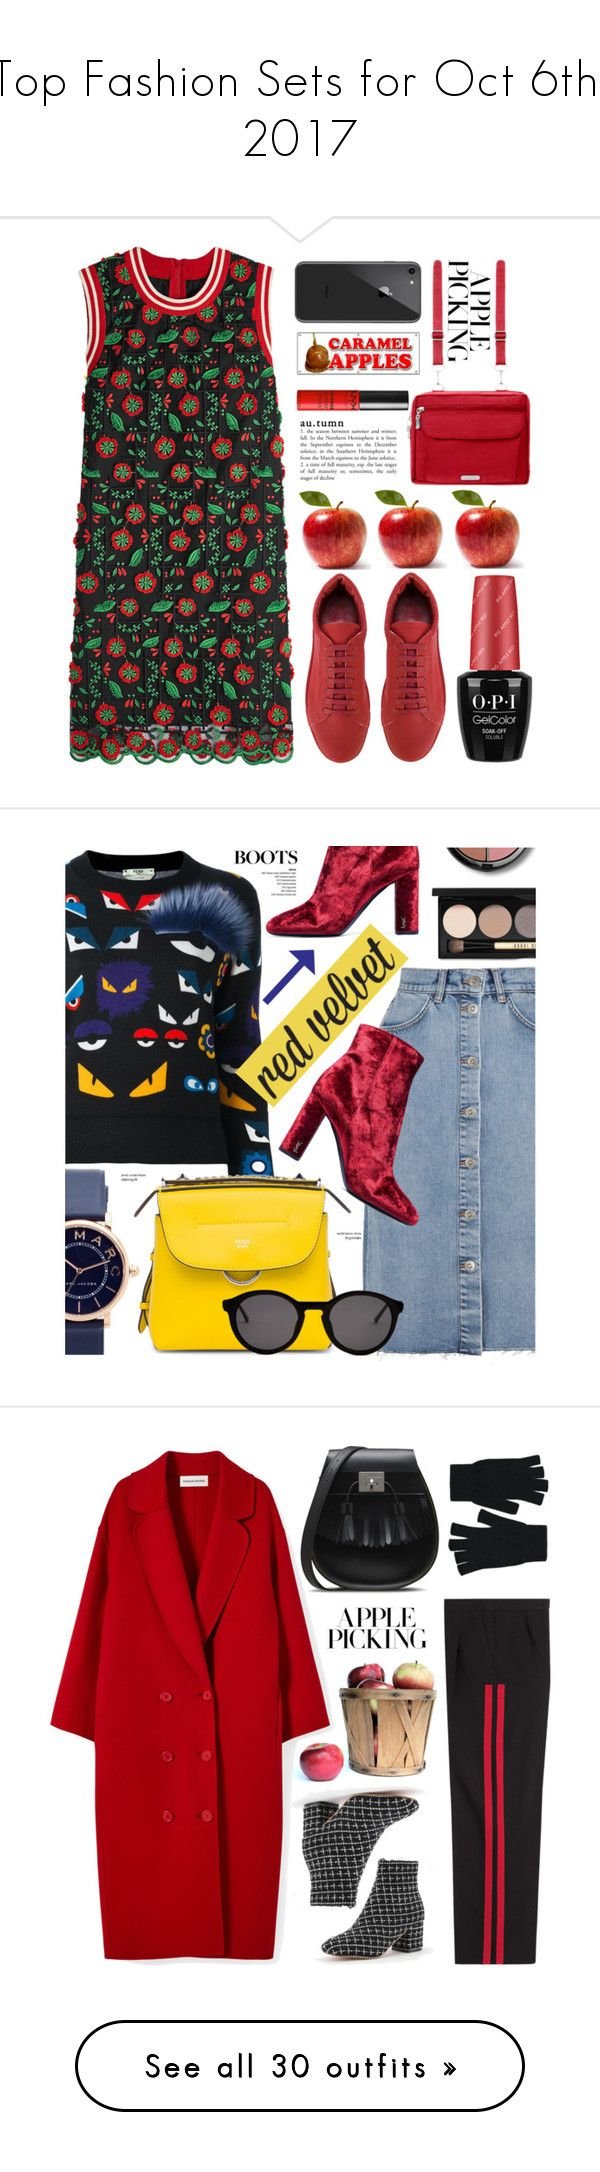 """""""Top Fashion Sets for Oct 6th, 2017"""" by polyvore ❤ liked on Polyvore featuring Anna Sui, Jil Sander, Baggallini, Forever 21, applepicking, M.i.h Jeans, Fendi, Marc Jacobs, Yves Saint Laurent and Thierry Lasry"""